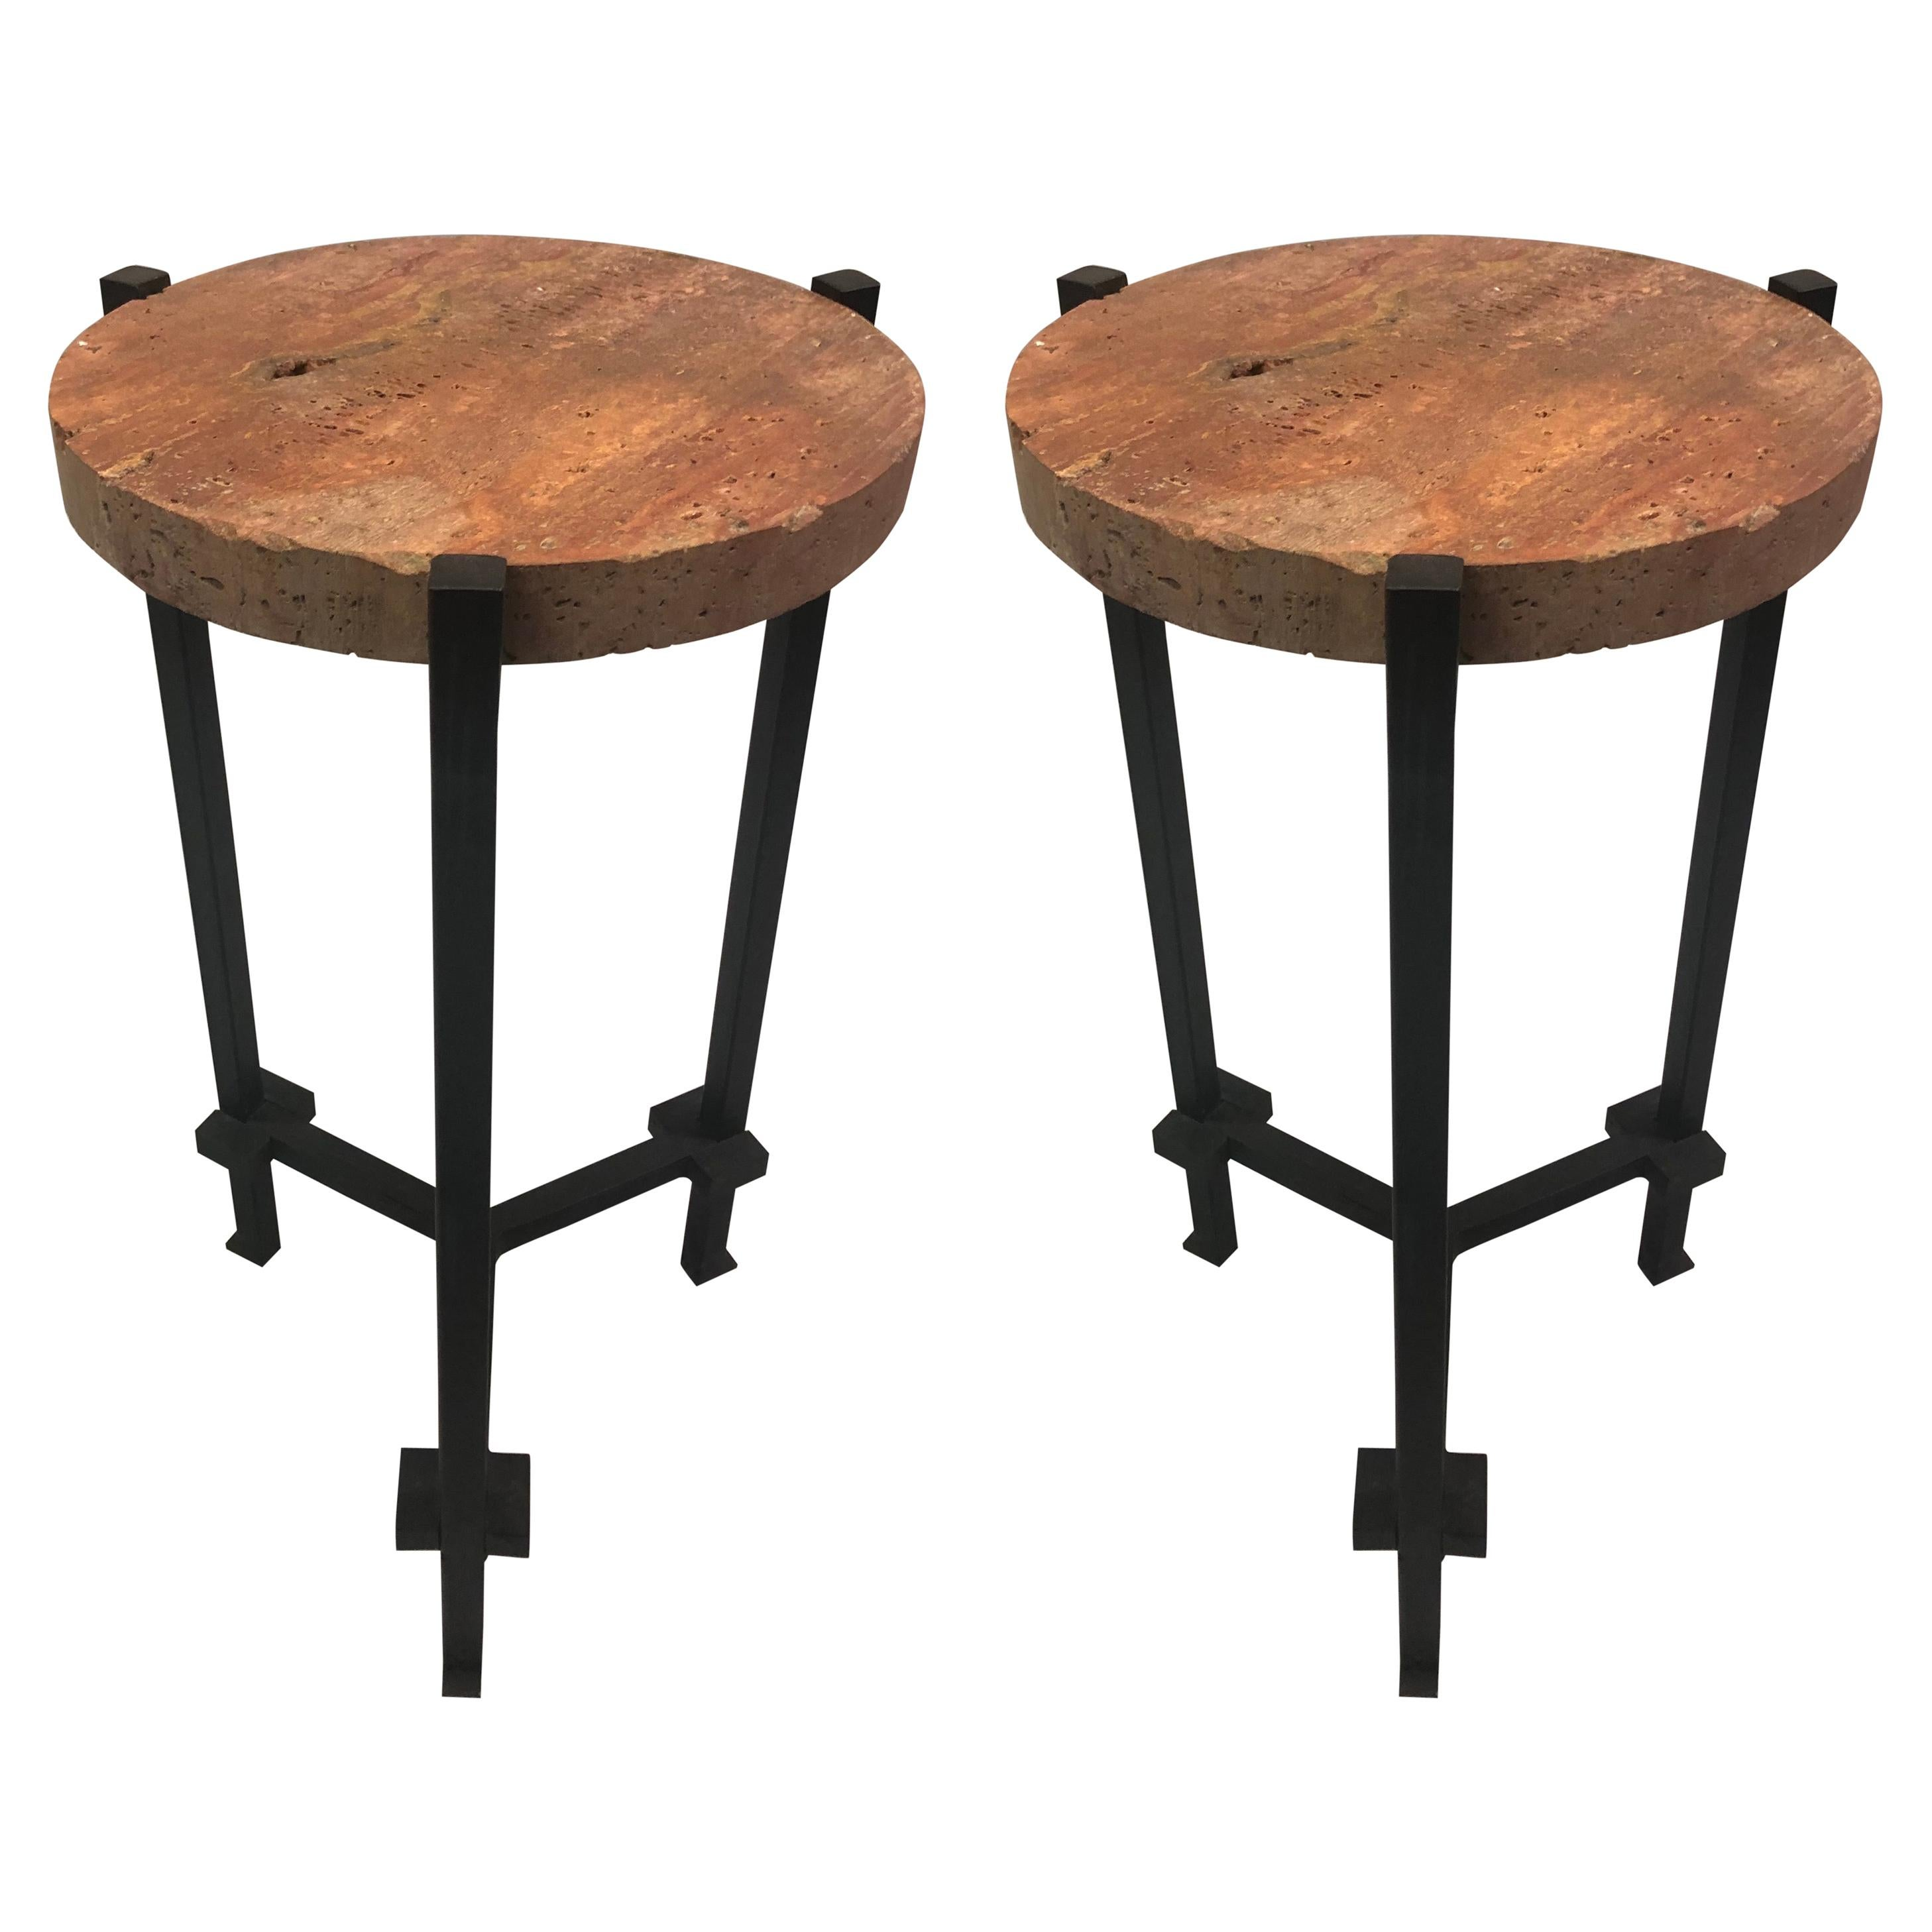 Pair of French Wrought Iron, Travertine & Crystal Side Tables, Marc du Plantier